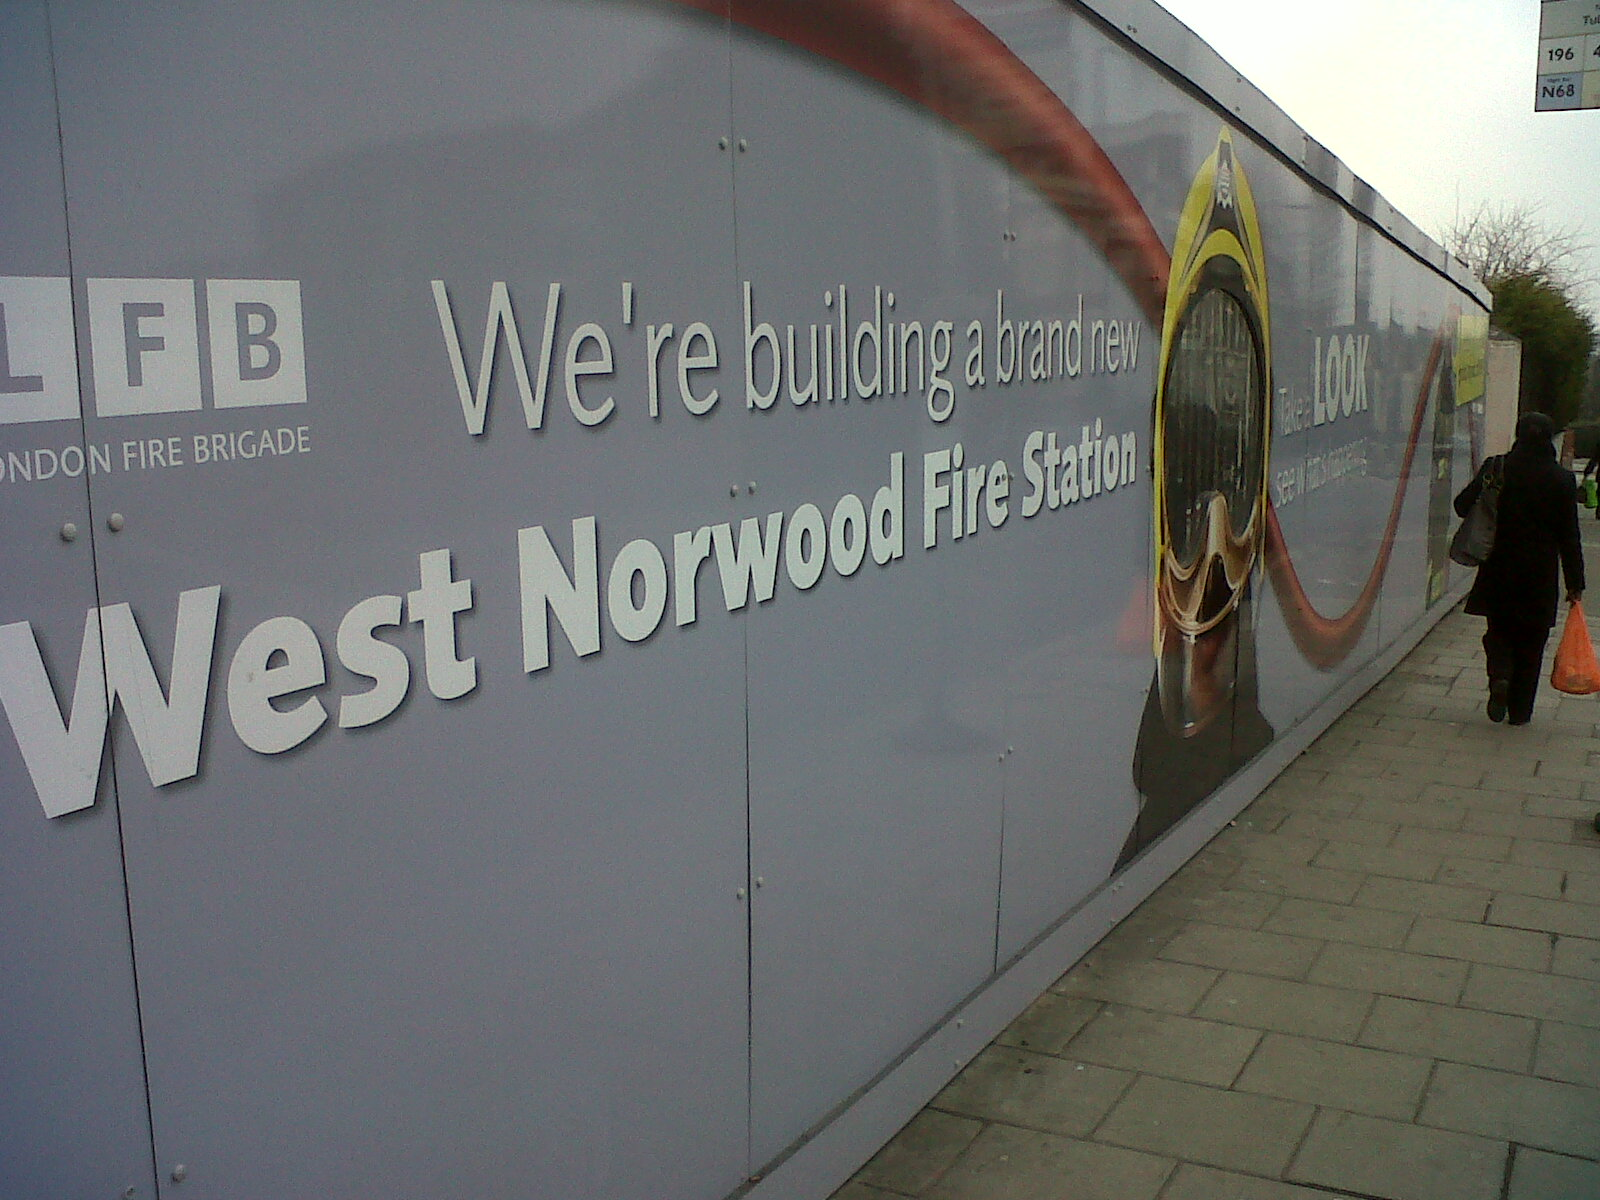 Fire Station West Norwood News